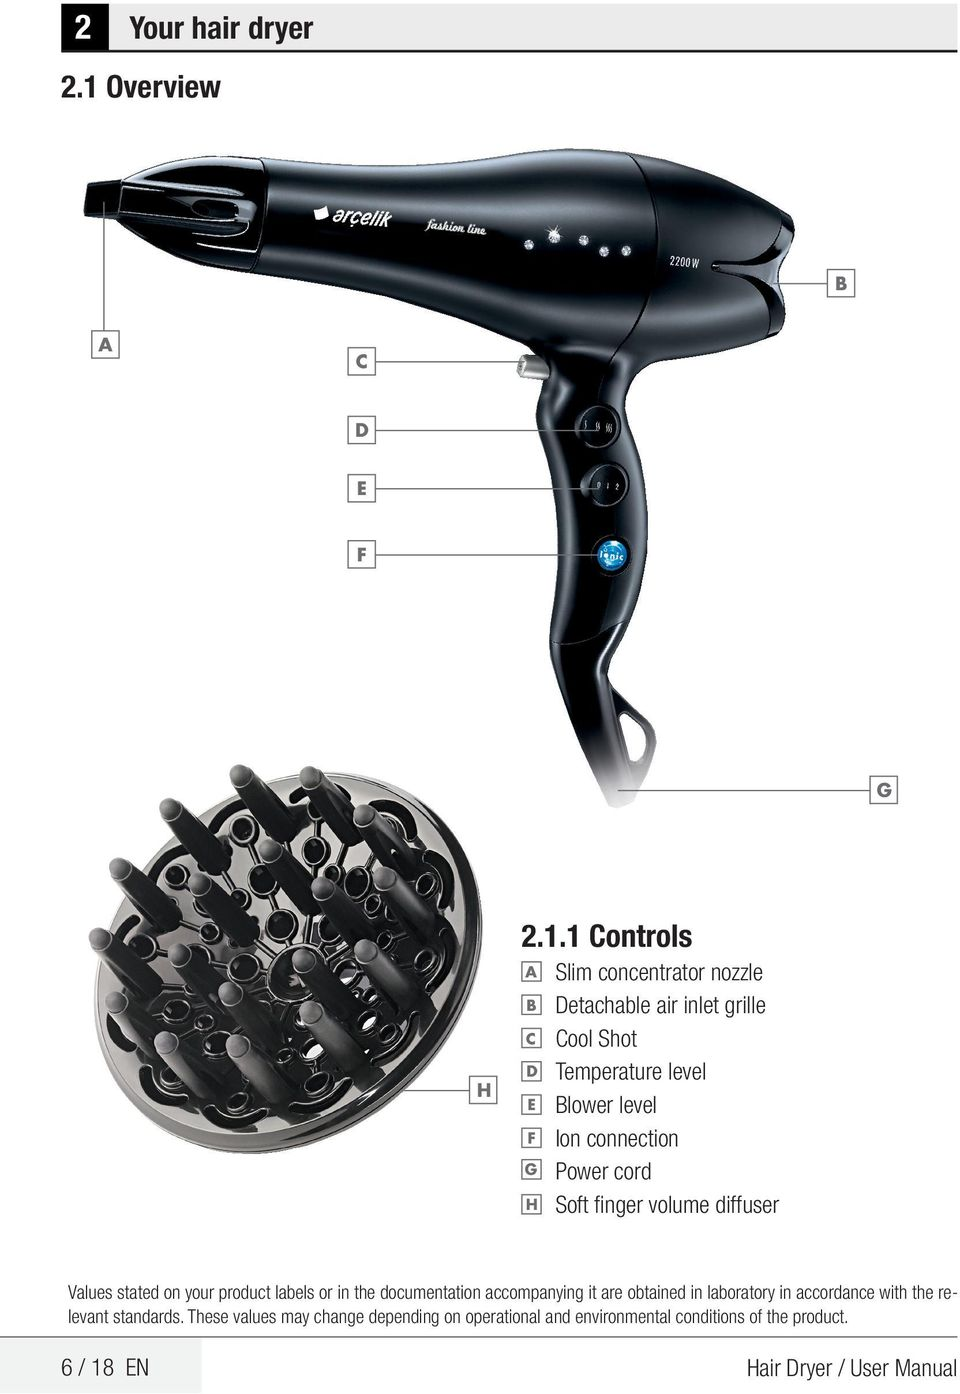 1 Controls A Slim concentrator nozzle B Detachable air inlet grille C Cool Shot D Temperature level E Blower level F Ion